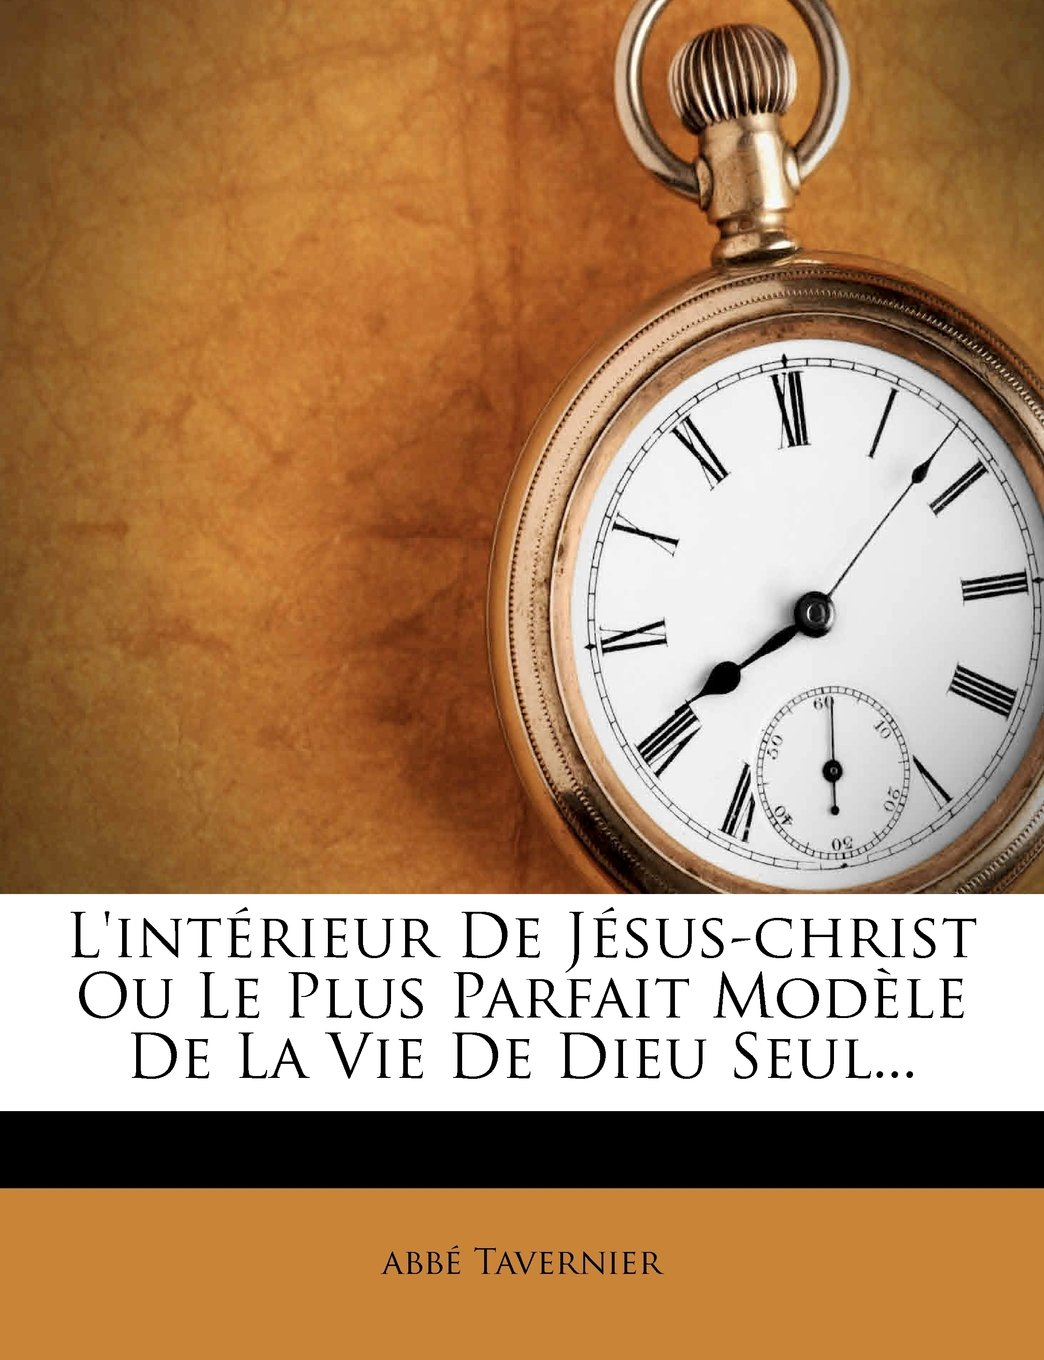 Download L'Interieur de Jesus-Christ Ou Le Plus Parfait Modele de La Vie de Dieu Seul... (French Edition) pdf